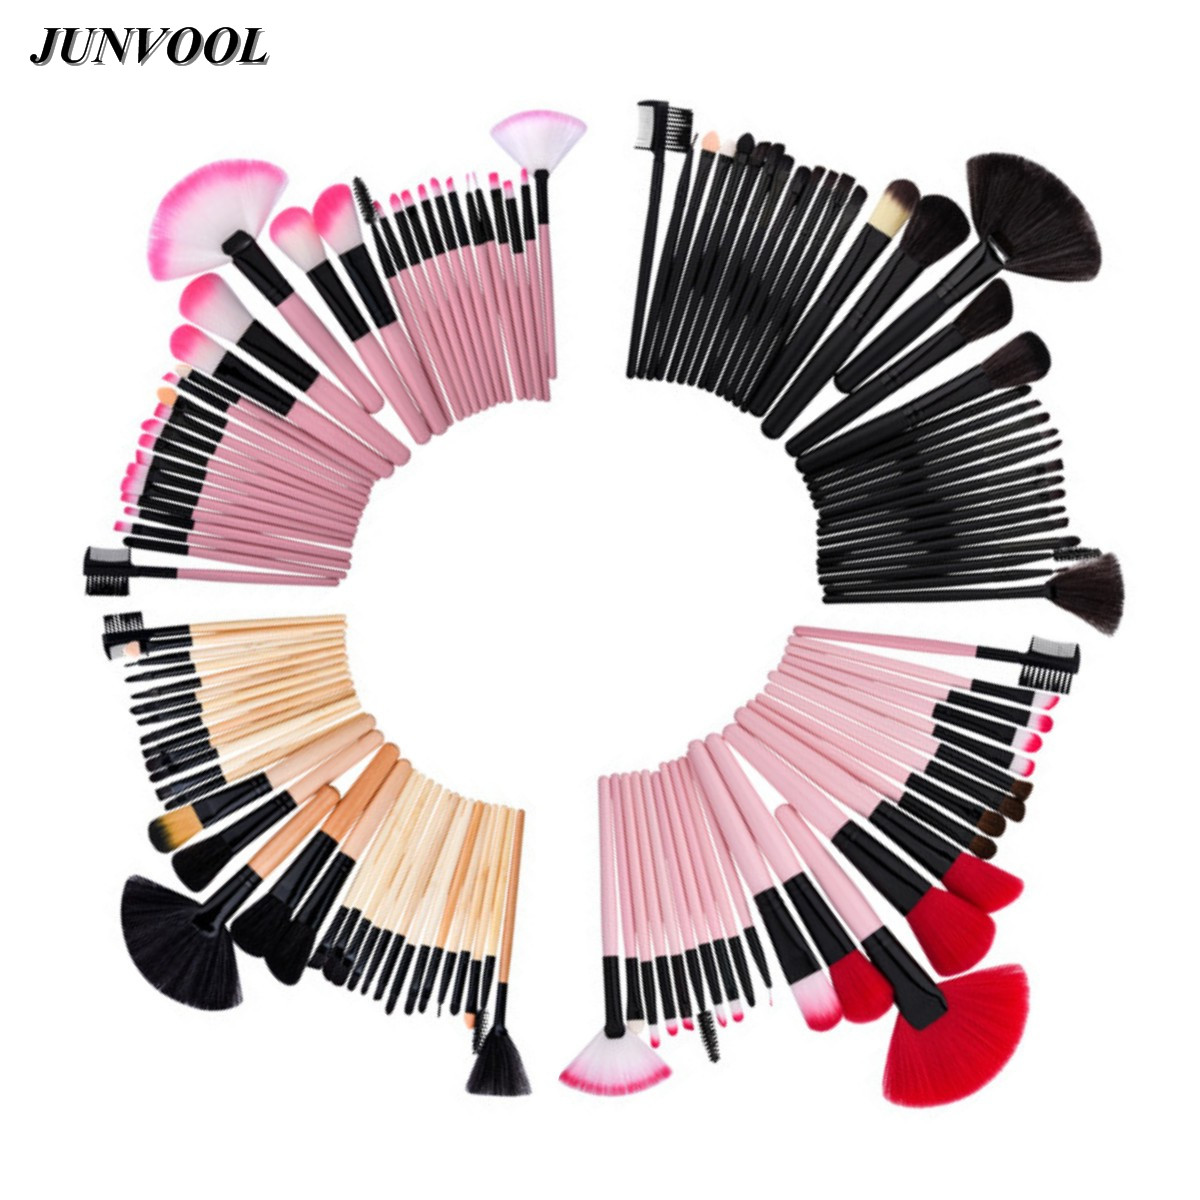 Pink Cosmetic Fan Brush Soft Synthetic Hair Make Up Tools Kit Cosmetics Makeup Brushes Black Sets Ccessories Beauty Essentials best quality fast shipping 15 pcs soft synthetic hair make up tools kit cosmetic beauty makeup brush black set with leather case